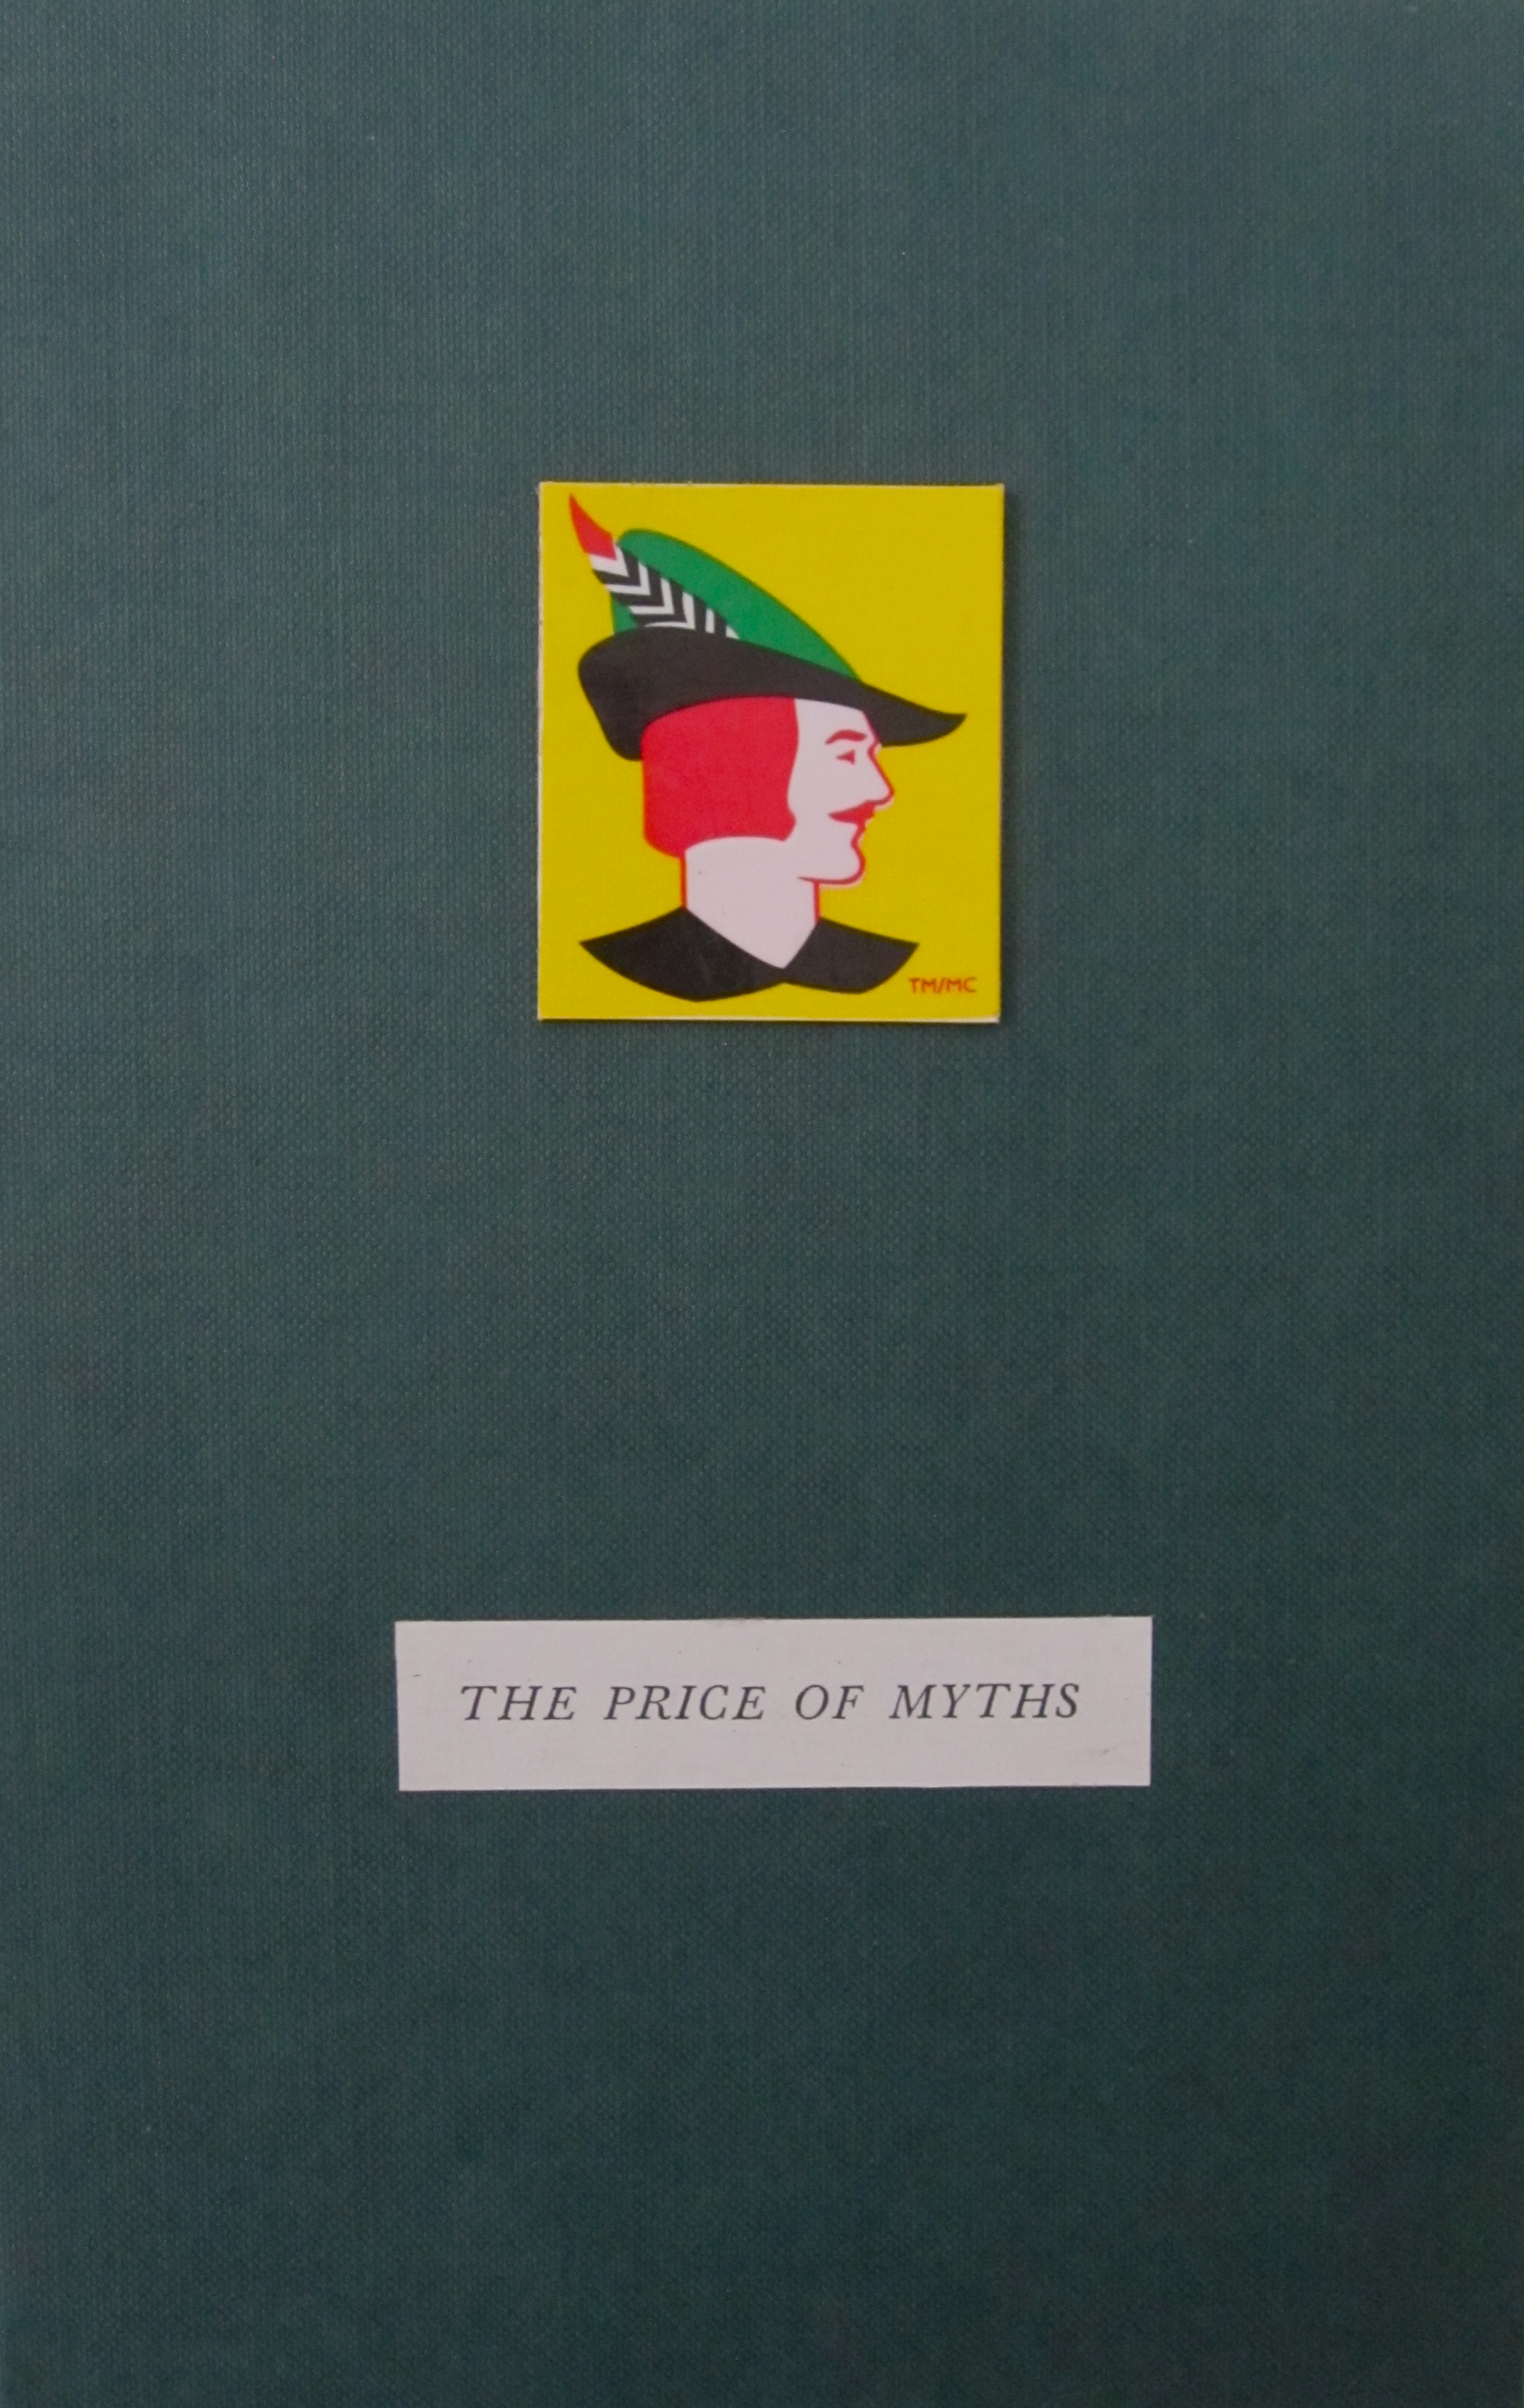 The Price of Myths © 2012 Maksymilian Kapelanski